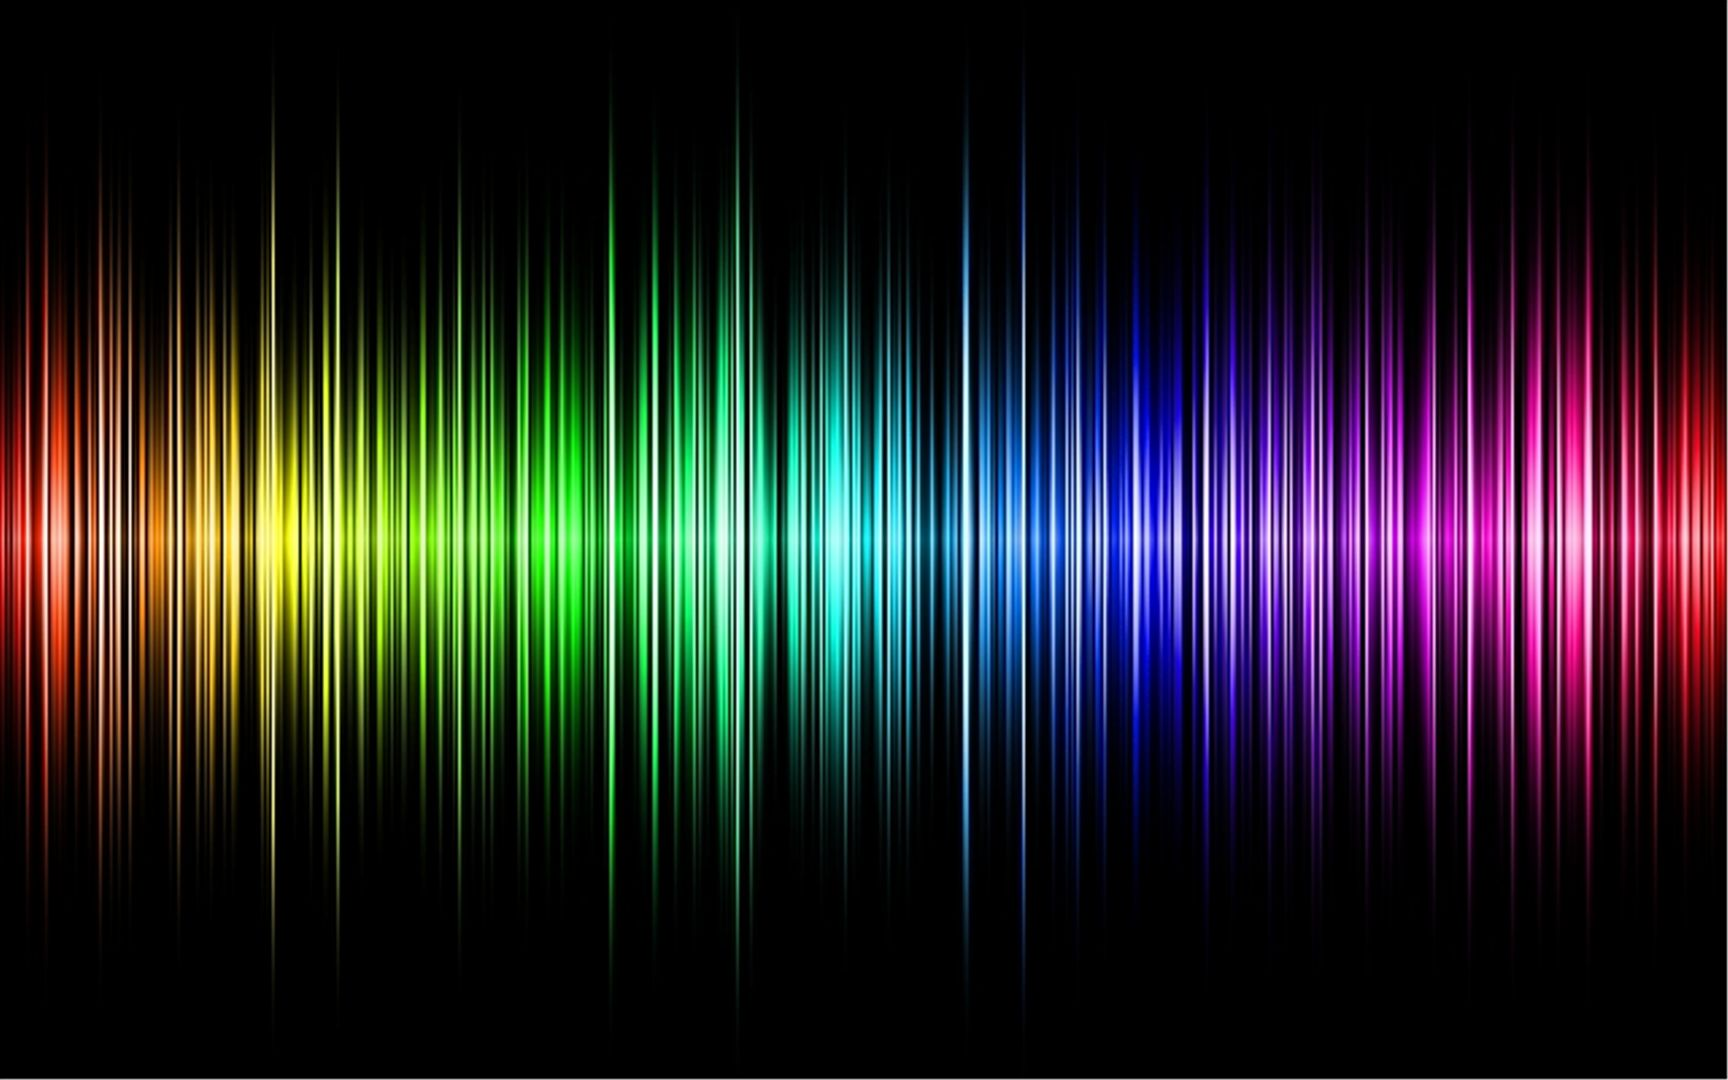 Spectrum The Entire Range Over Which Some Measurable Property Of A Physical System Or Phenomenon Can Vary Such As Frequency Sound Wavelength